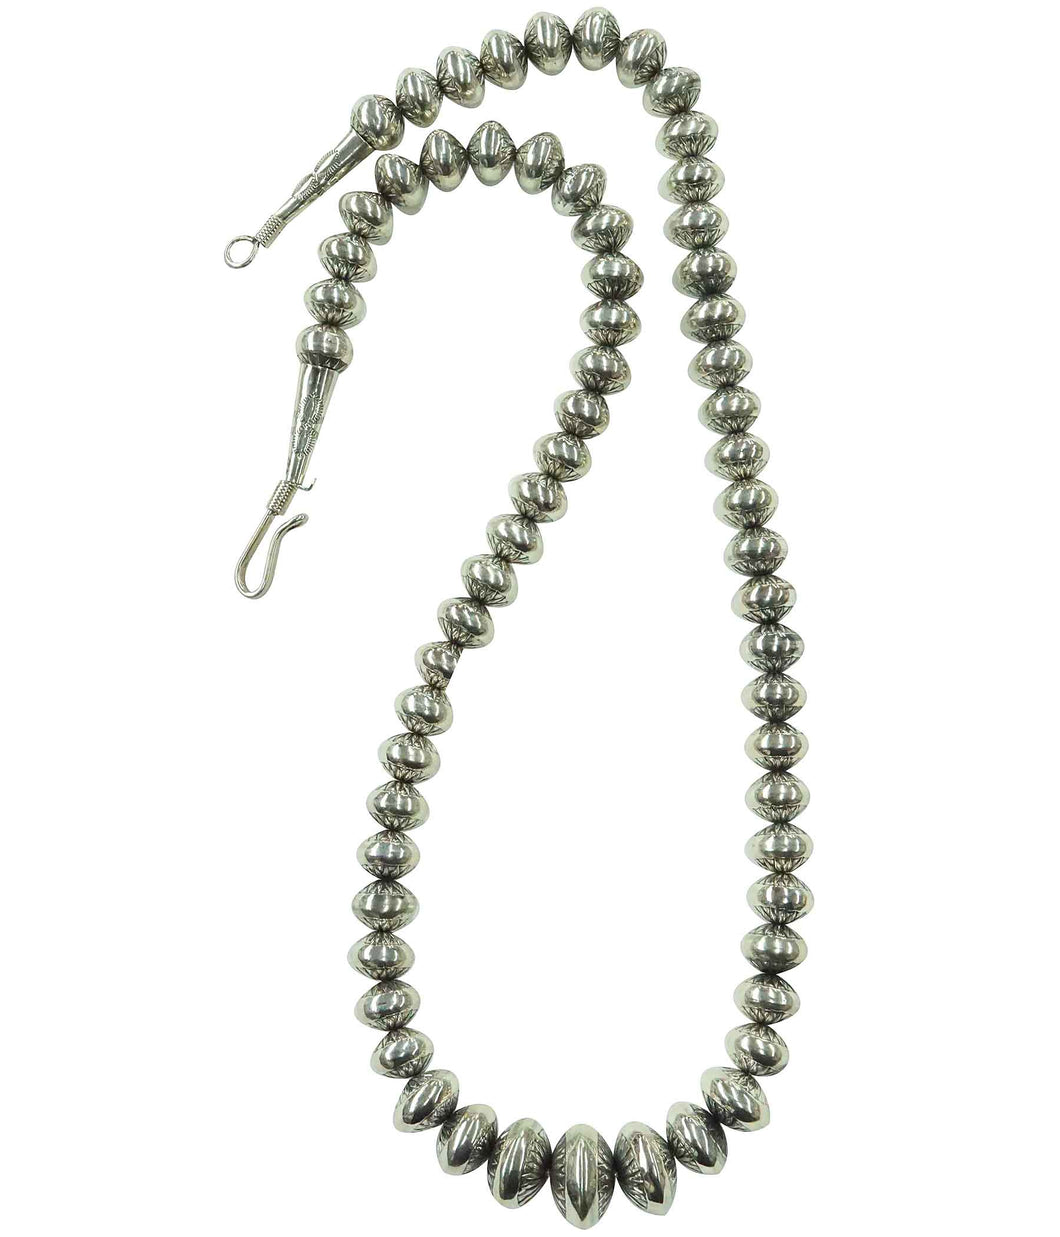 Delayne Reeves, Necklace, Graduated Silver Beads, Stamped, Navajo Handmade, 30